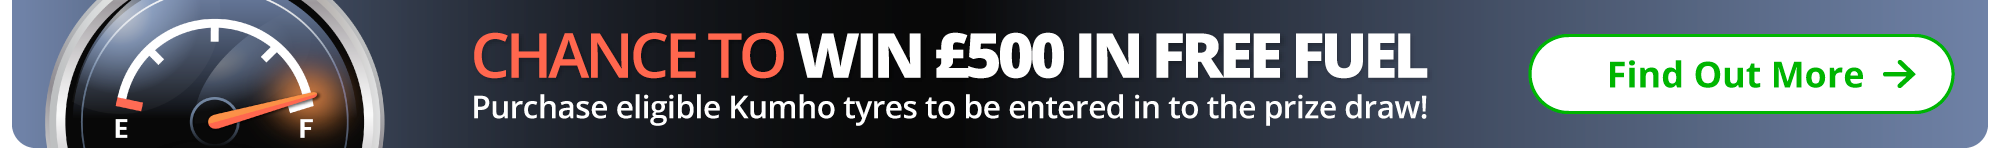 Chance to win £500 in free fuel when you order eligible Kumho tyres